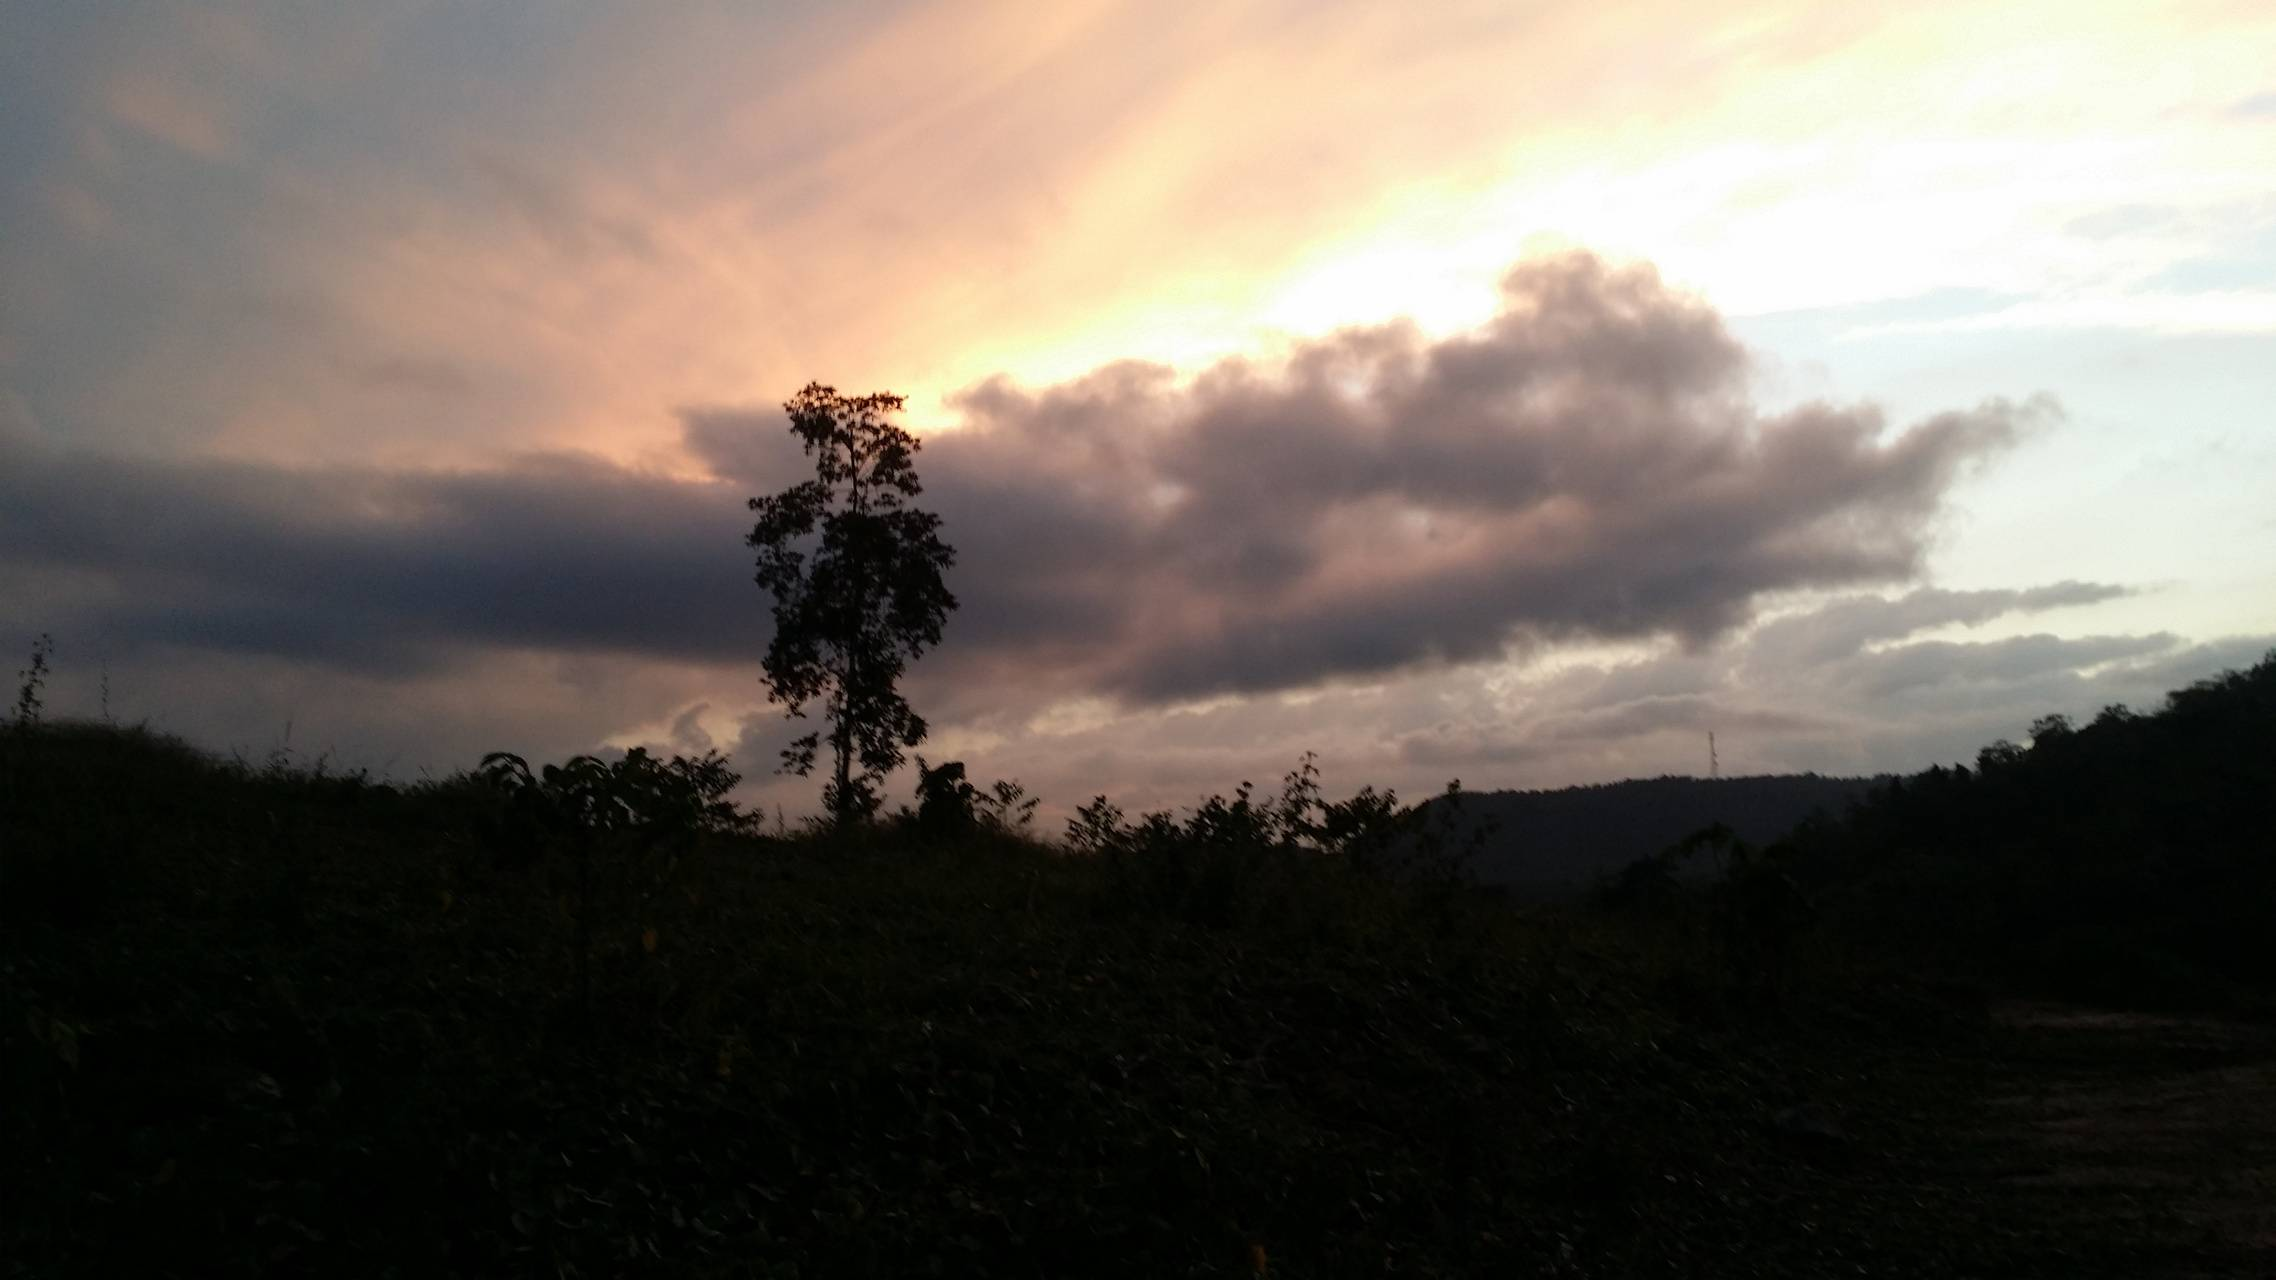 a tree in evening